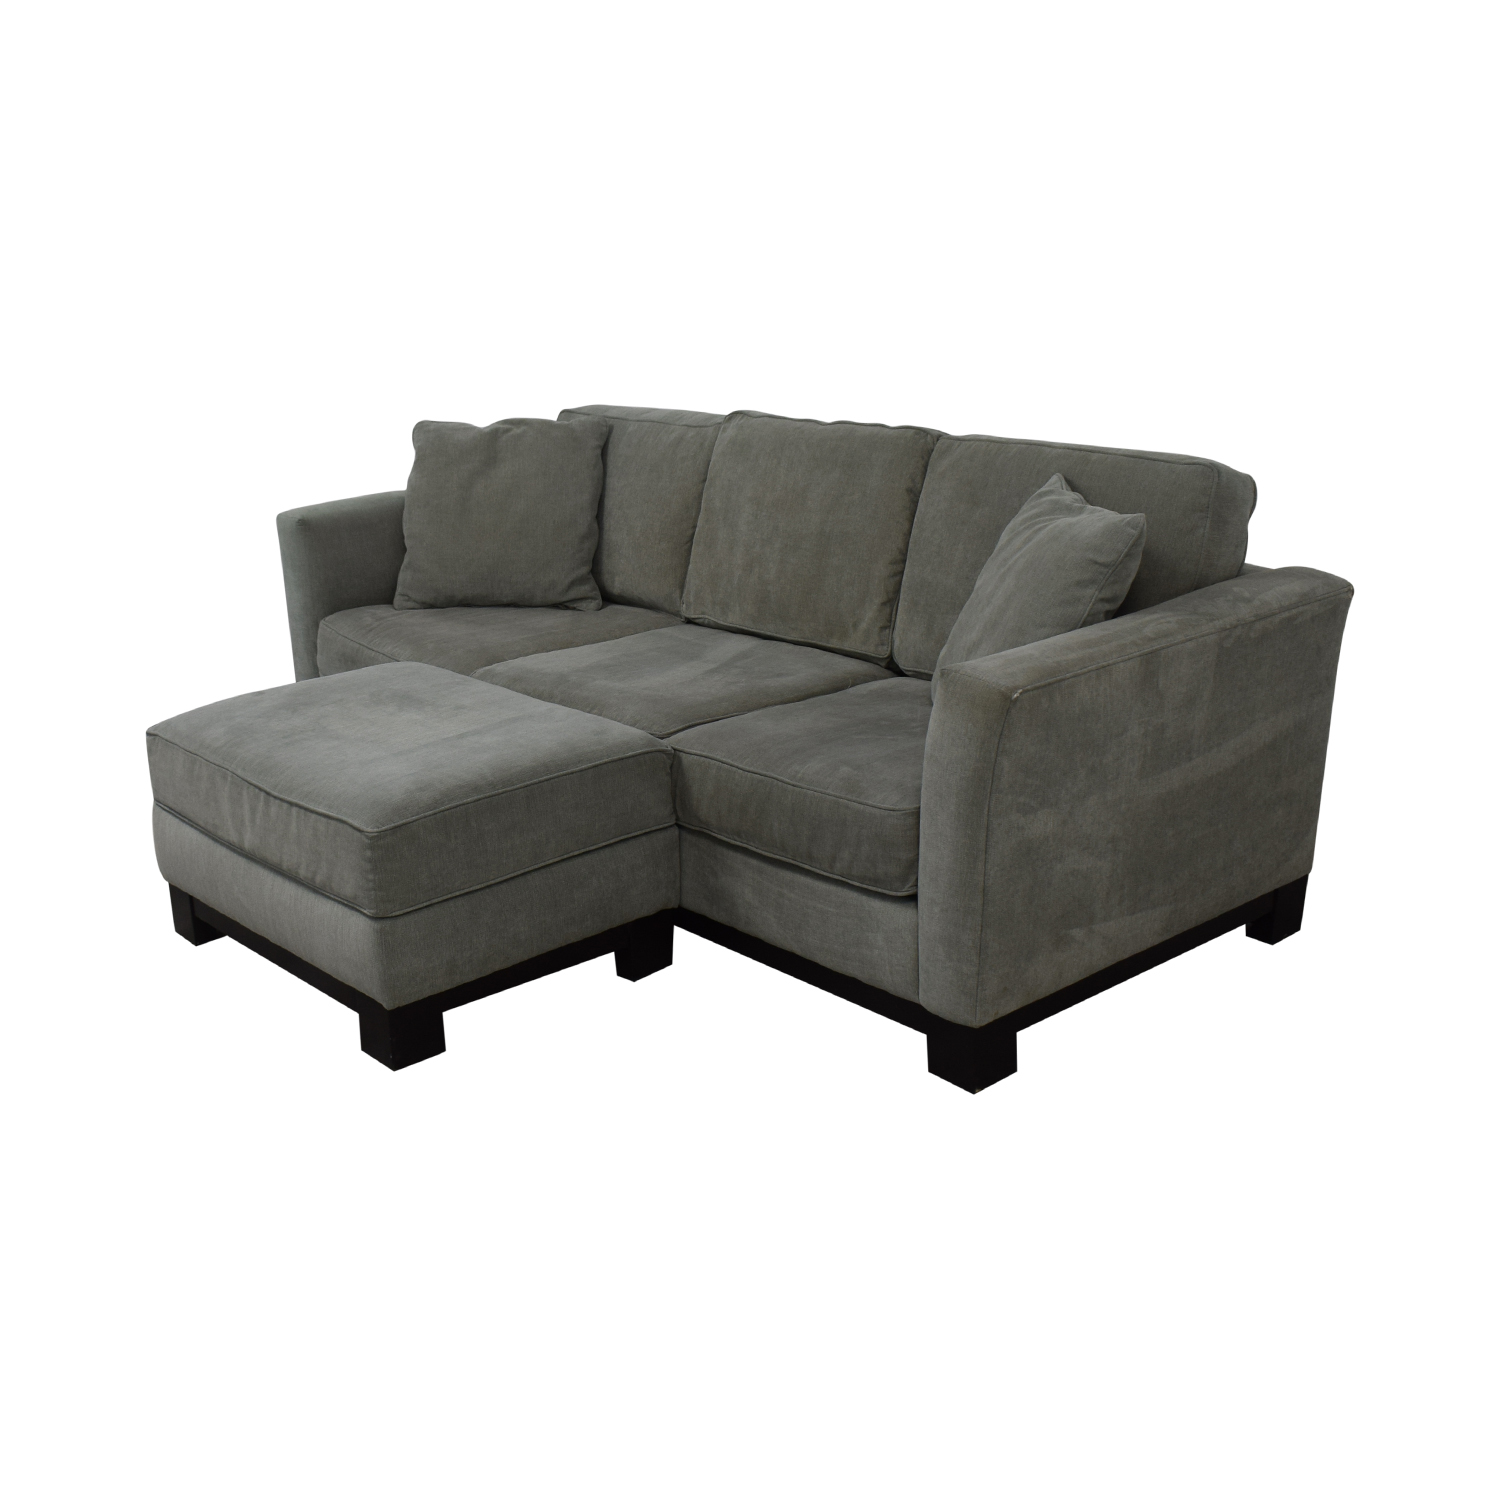 shop Macy's Modern Three Cushion Sofa And Ottoman Macy's